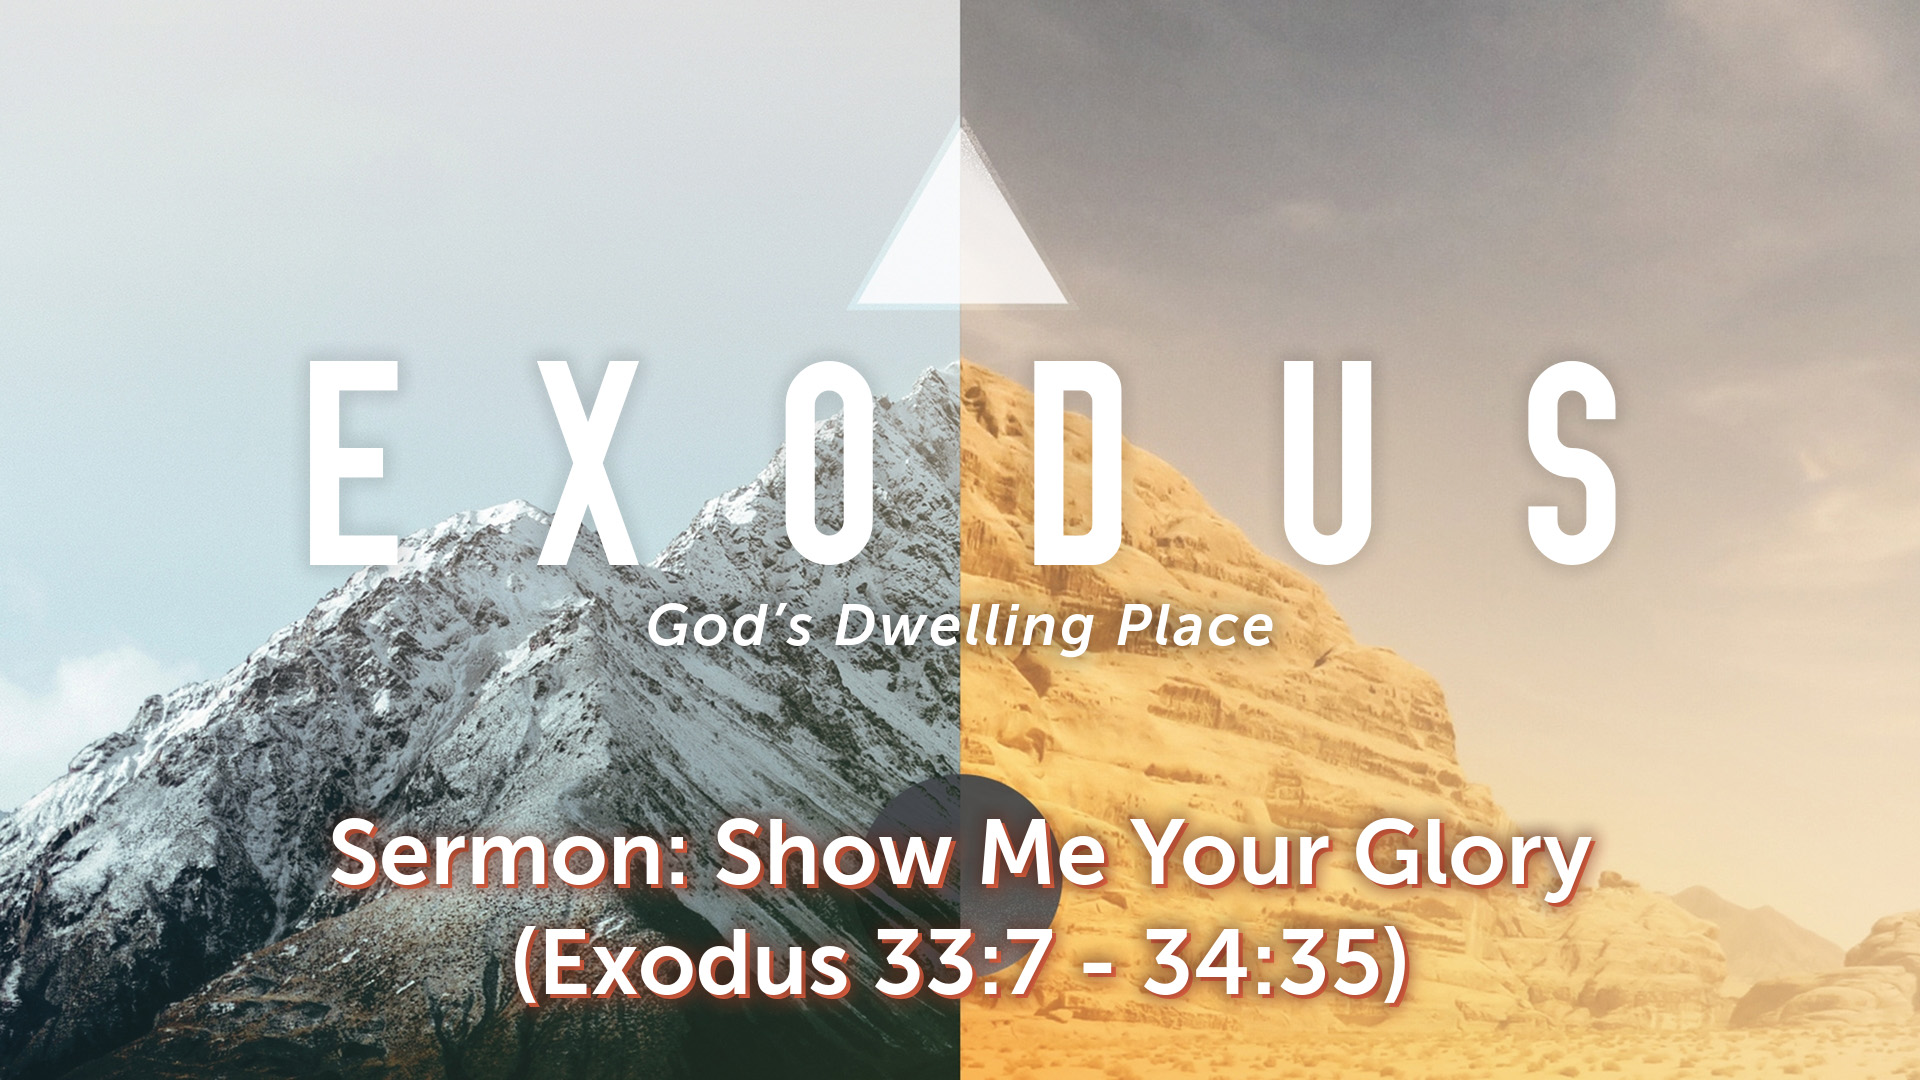 Image for the sermon Show Me Your Glory